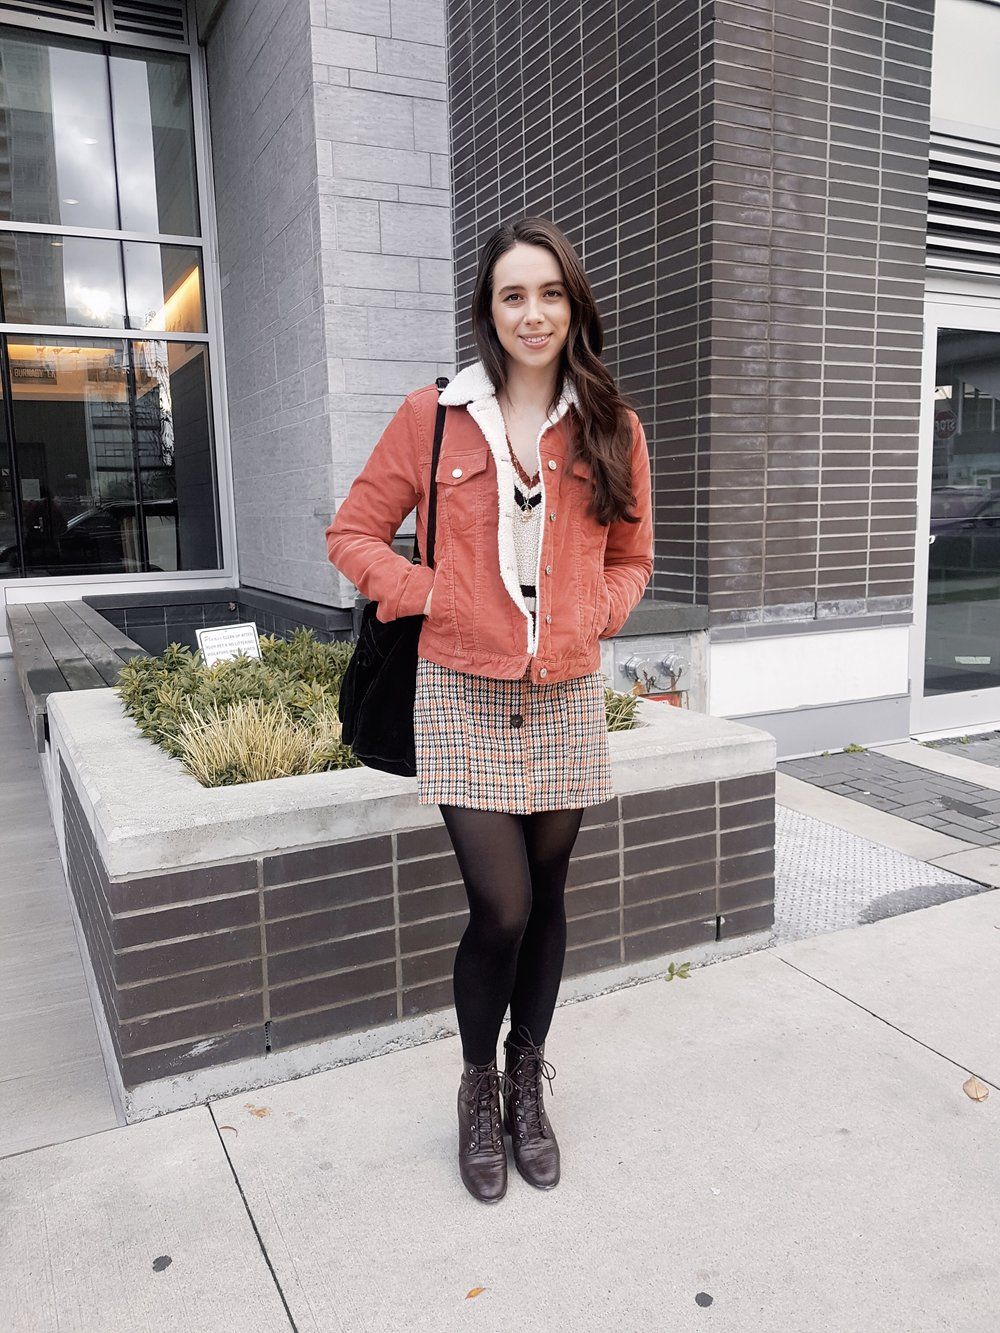 TUESDAY - Gap jacket, Urban Outfitters sweater, Zara dress, Forever21 boots